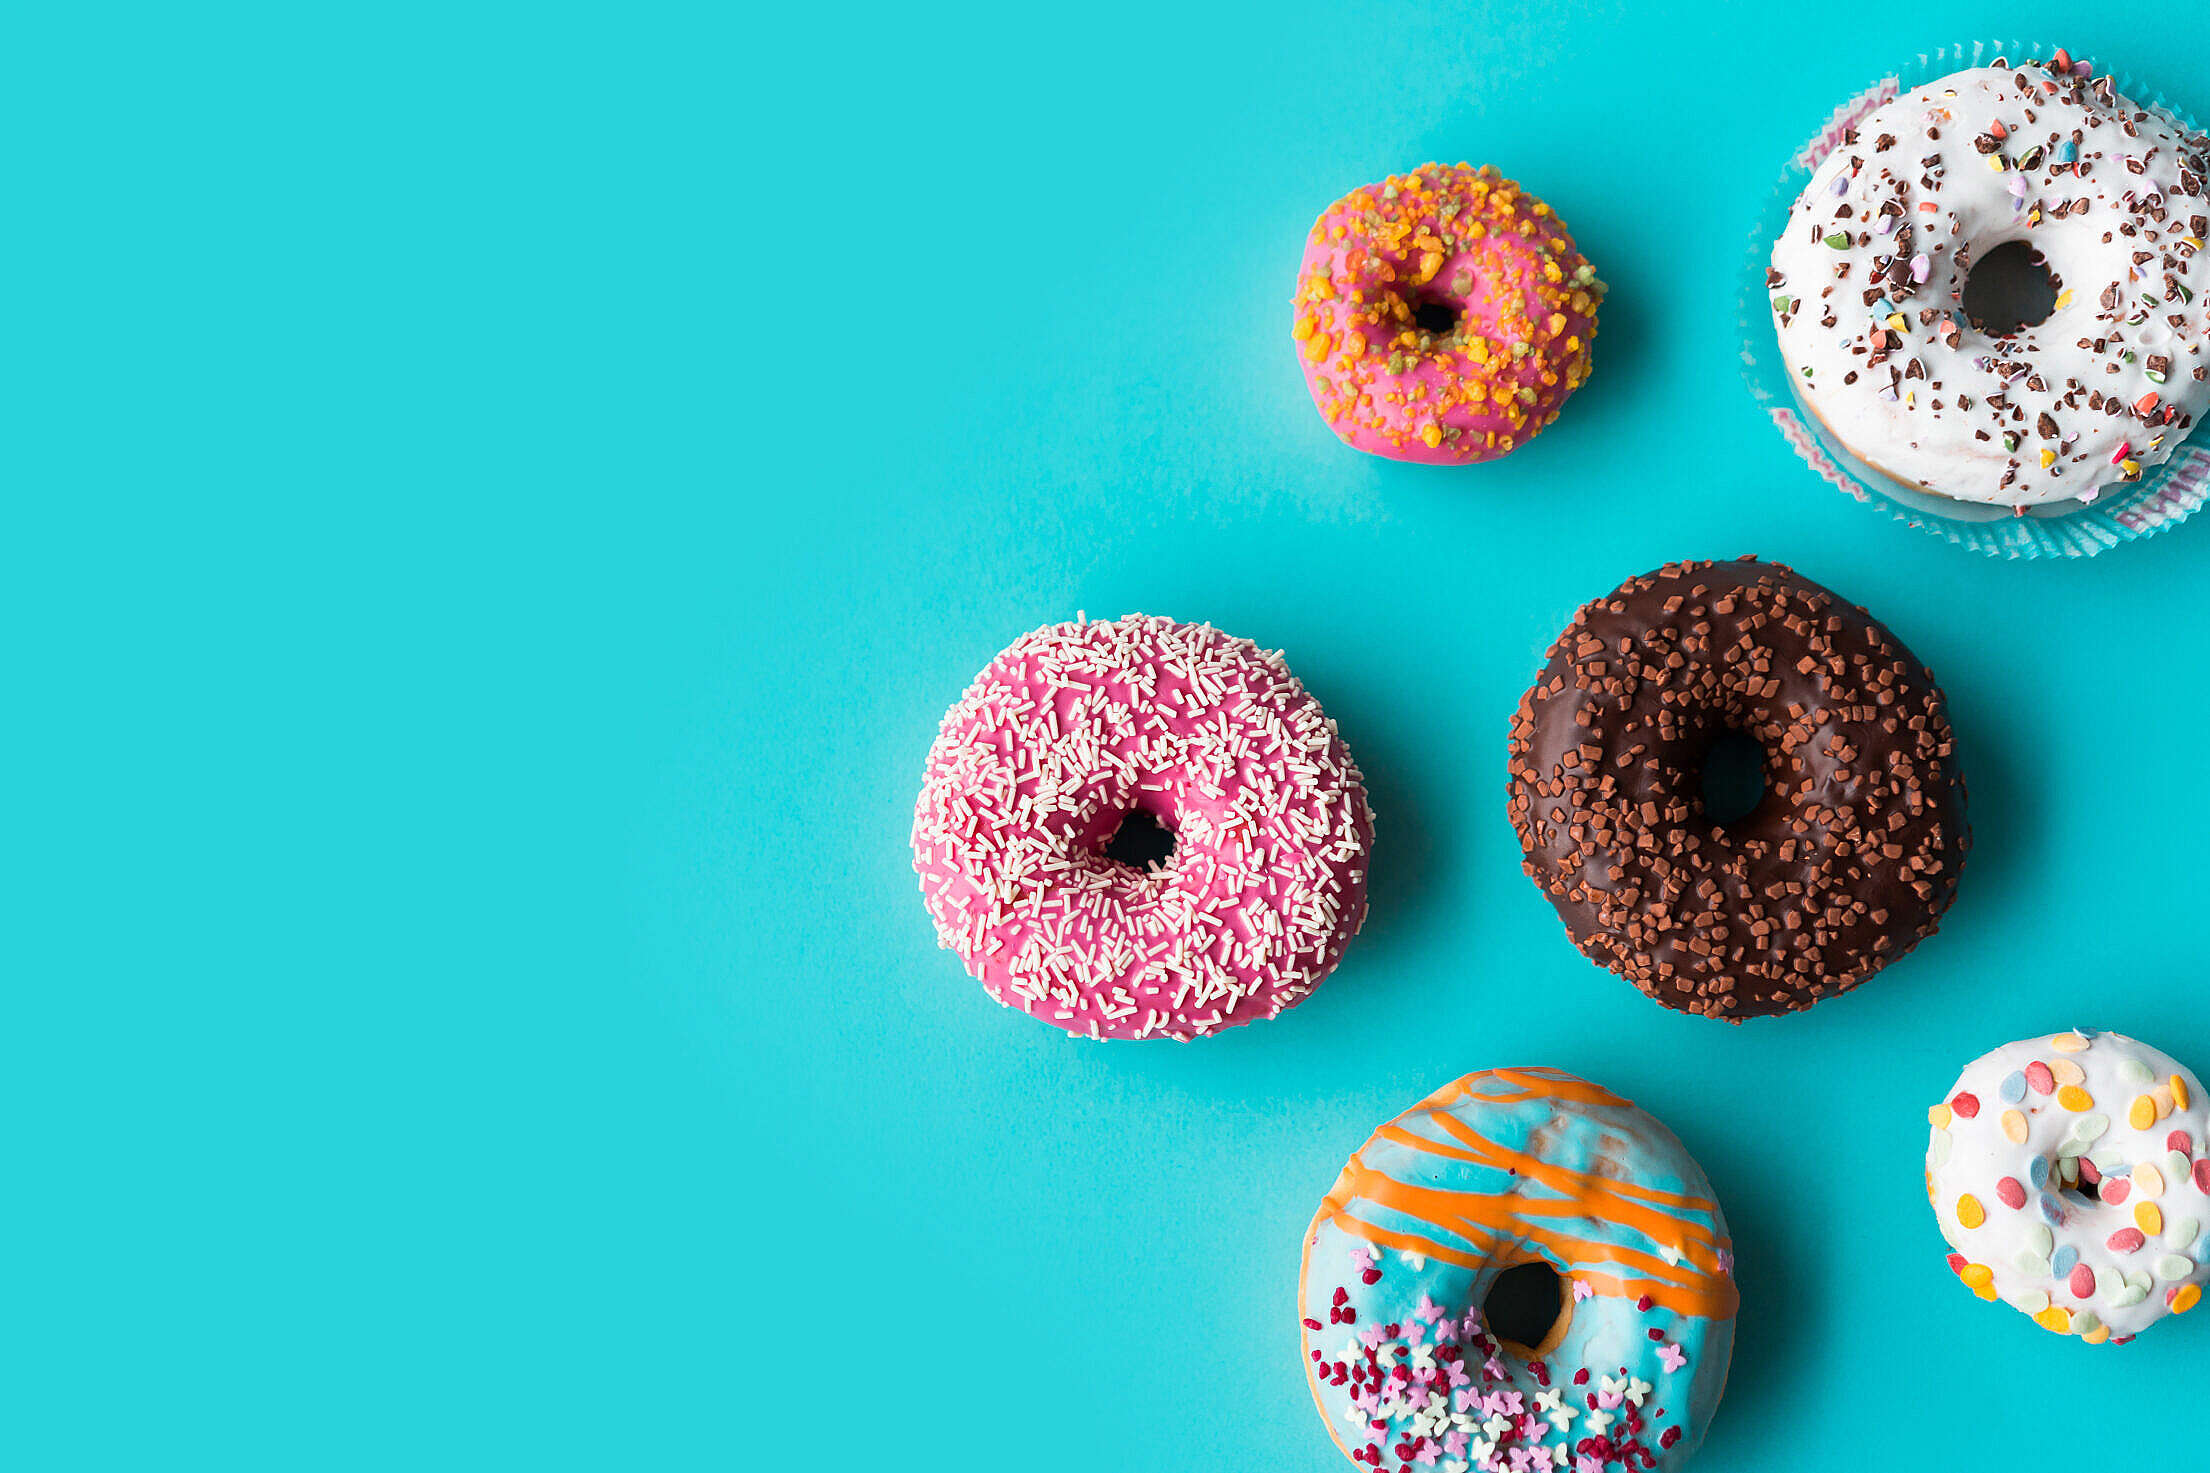 Donuts on Blue Background Free Stock Photo